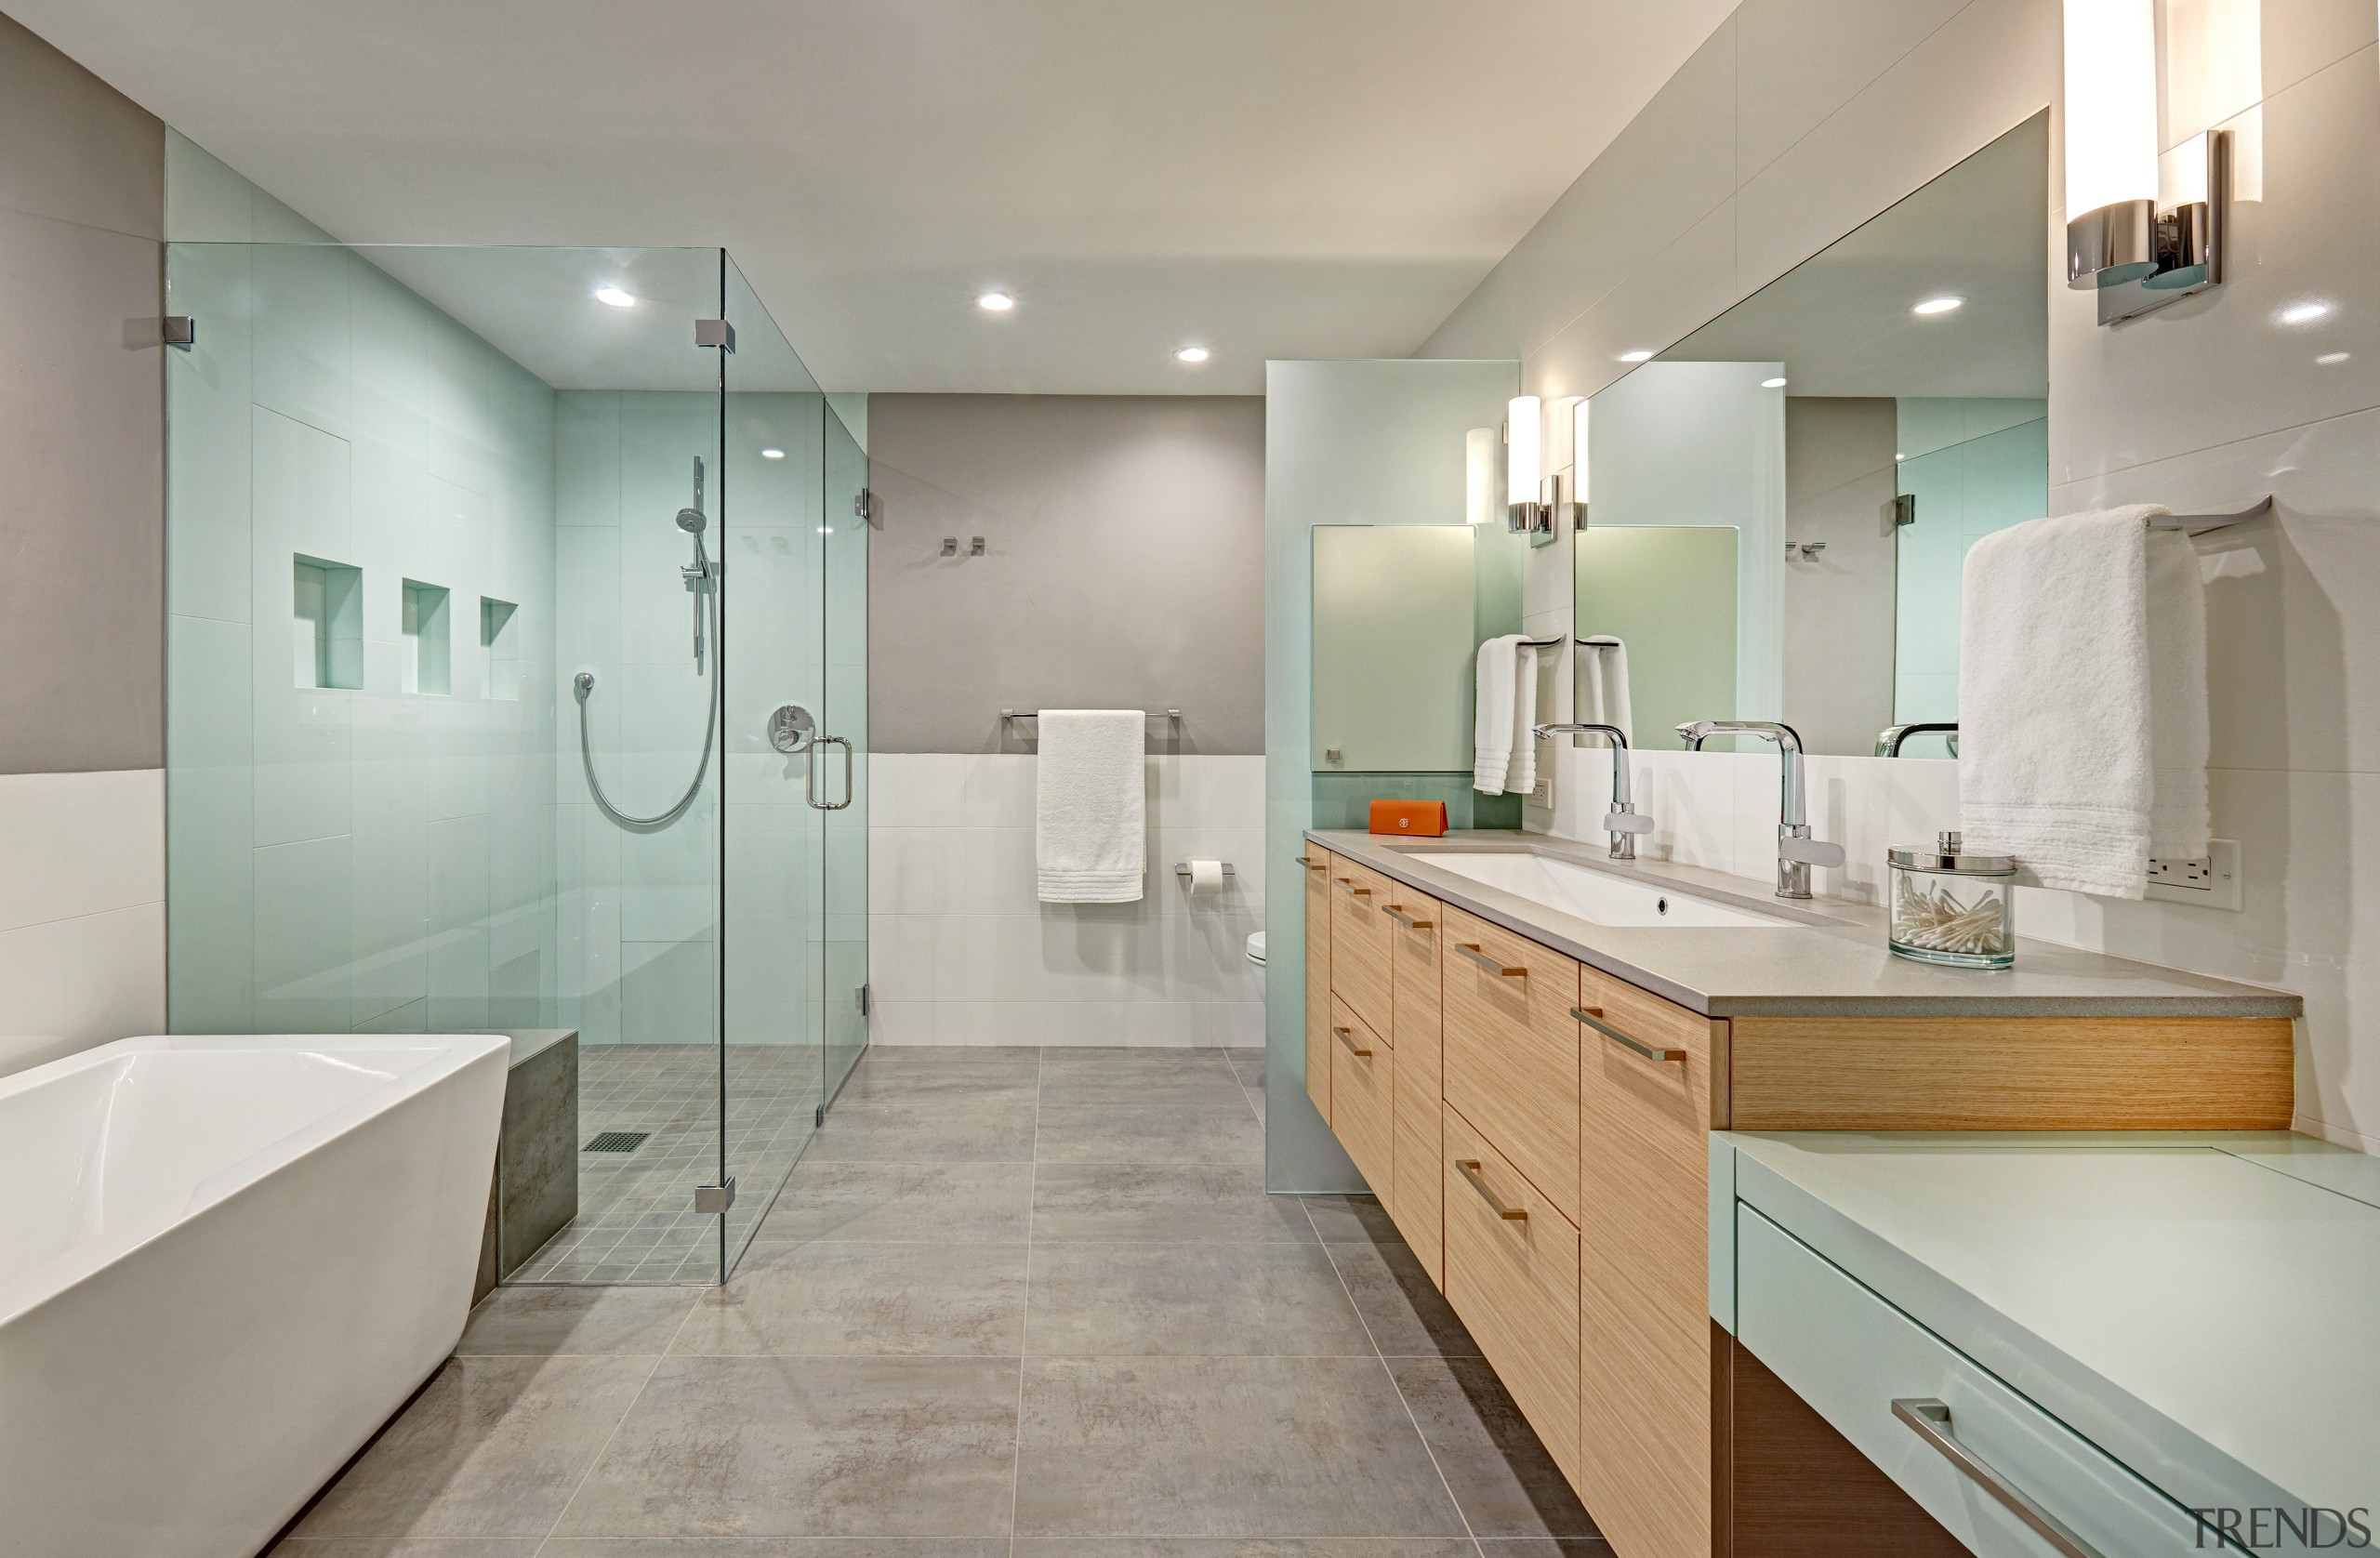 Wood and glass were popular materials for Mid-century architecture, bathroom, bathroom accessory, bathroom cabinet, cabinetry, flooring, furniture, home, house, interior design, plumbing fixture, basin, tap, tile, bath, Nar Design Group